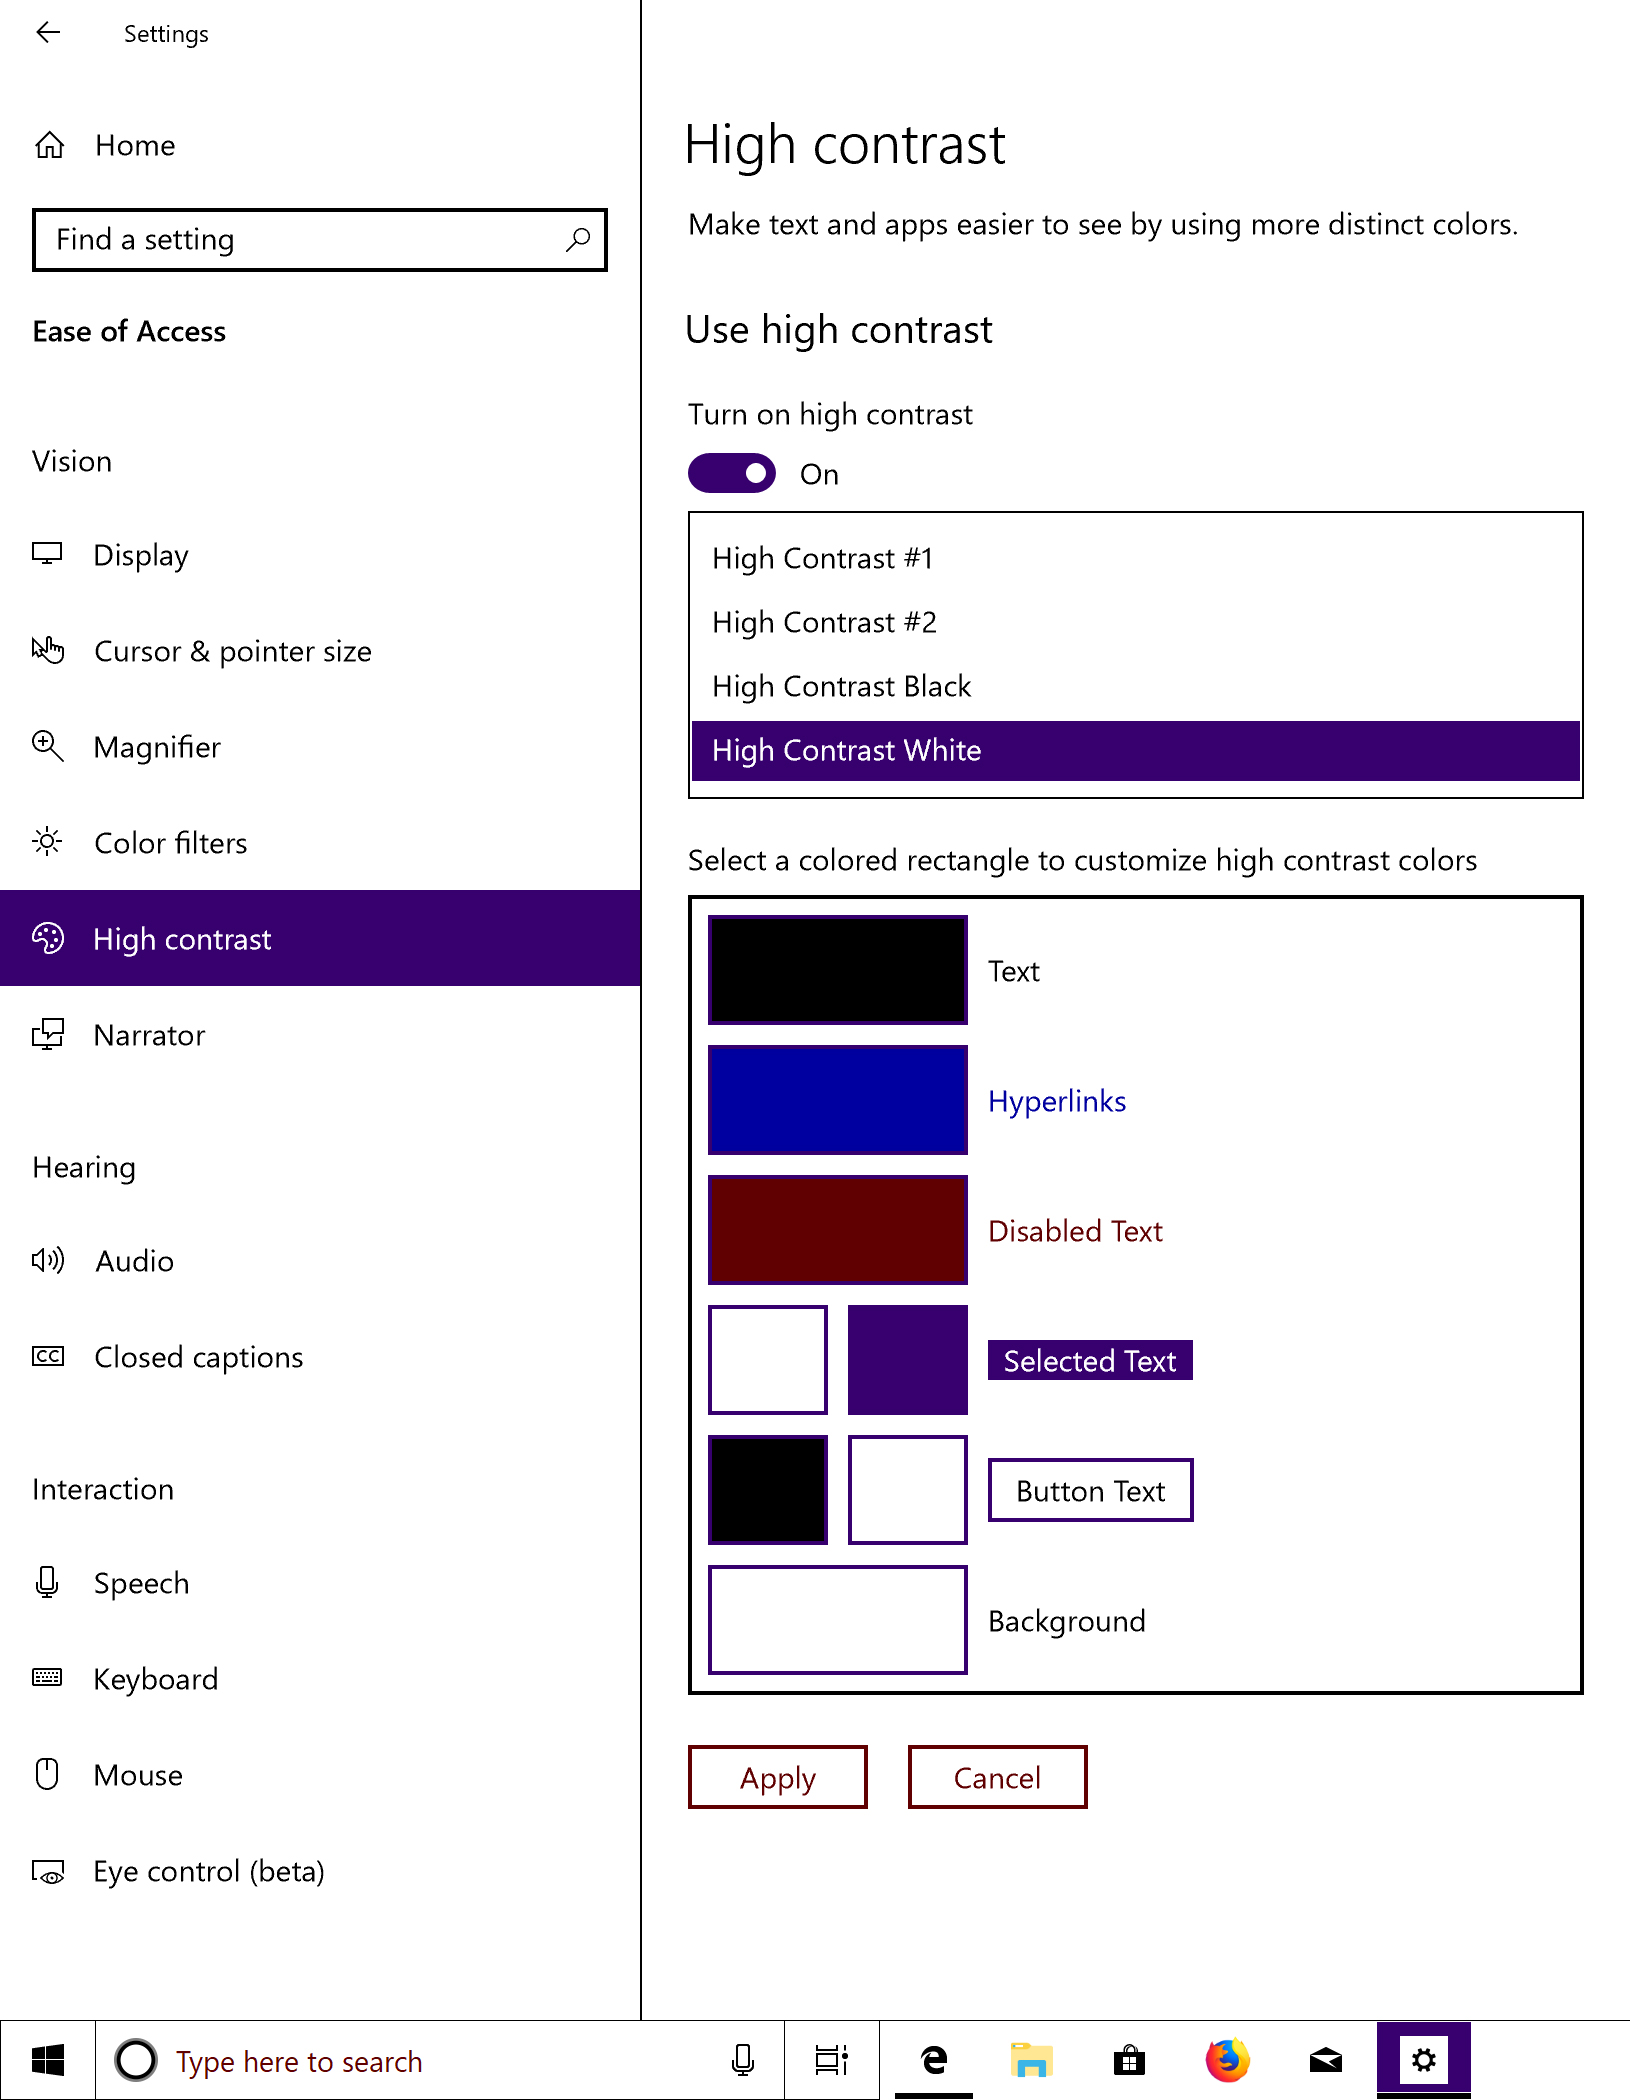 Screenshot of the Windows High Contrast Mode settings options in Windows. There are four options: 'High Contrast /#1', 'High Contrast /#2', 'High Contrast Black', and 'High Contrast White'. 'High Contrast White' has been selected and the settings is turned on.